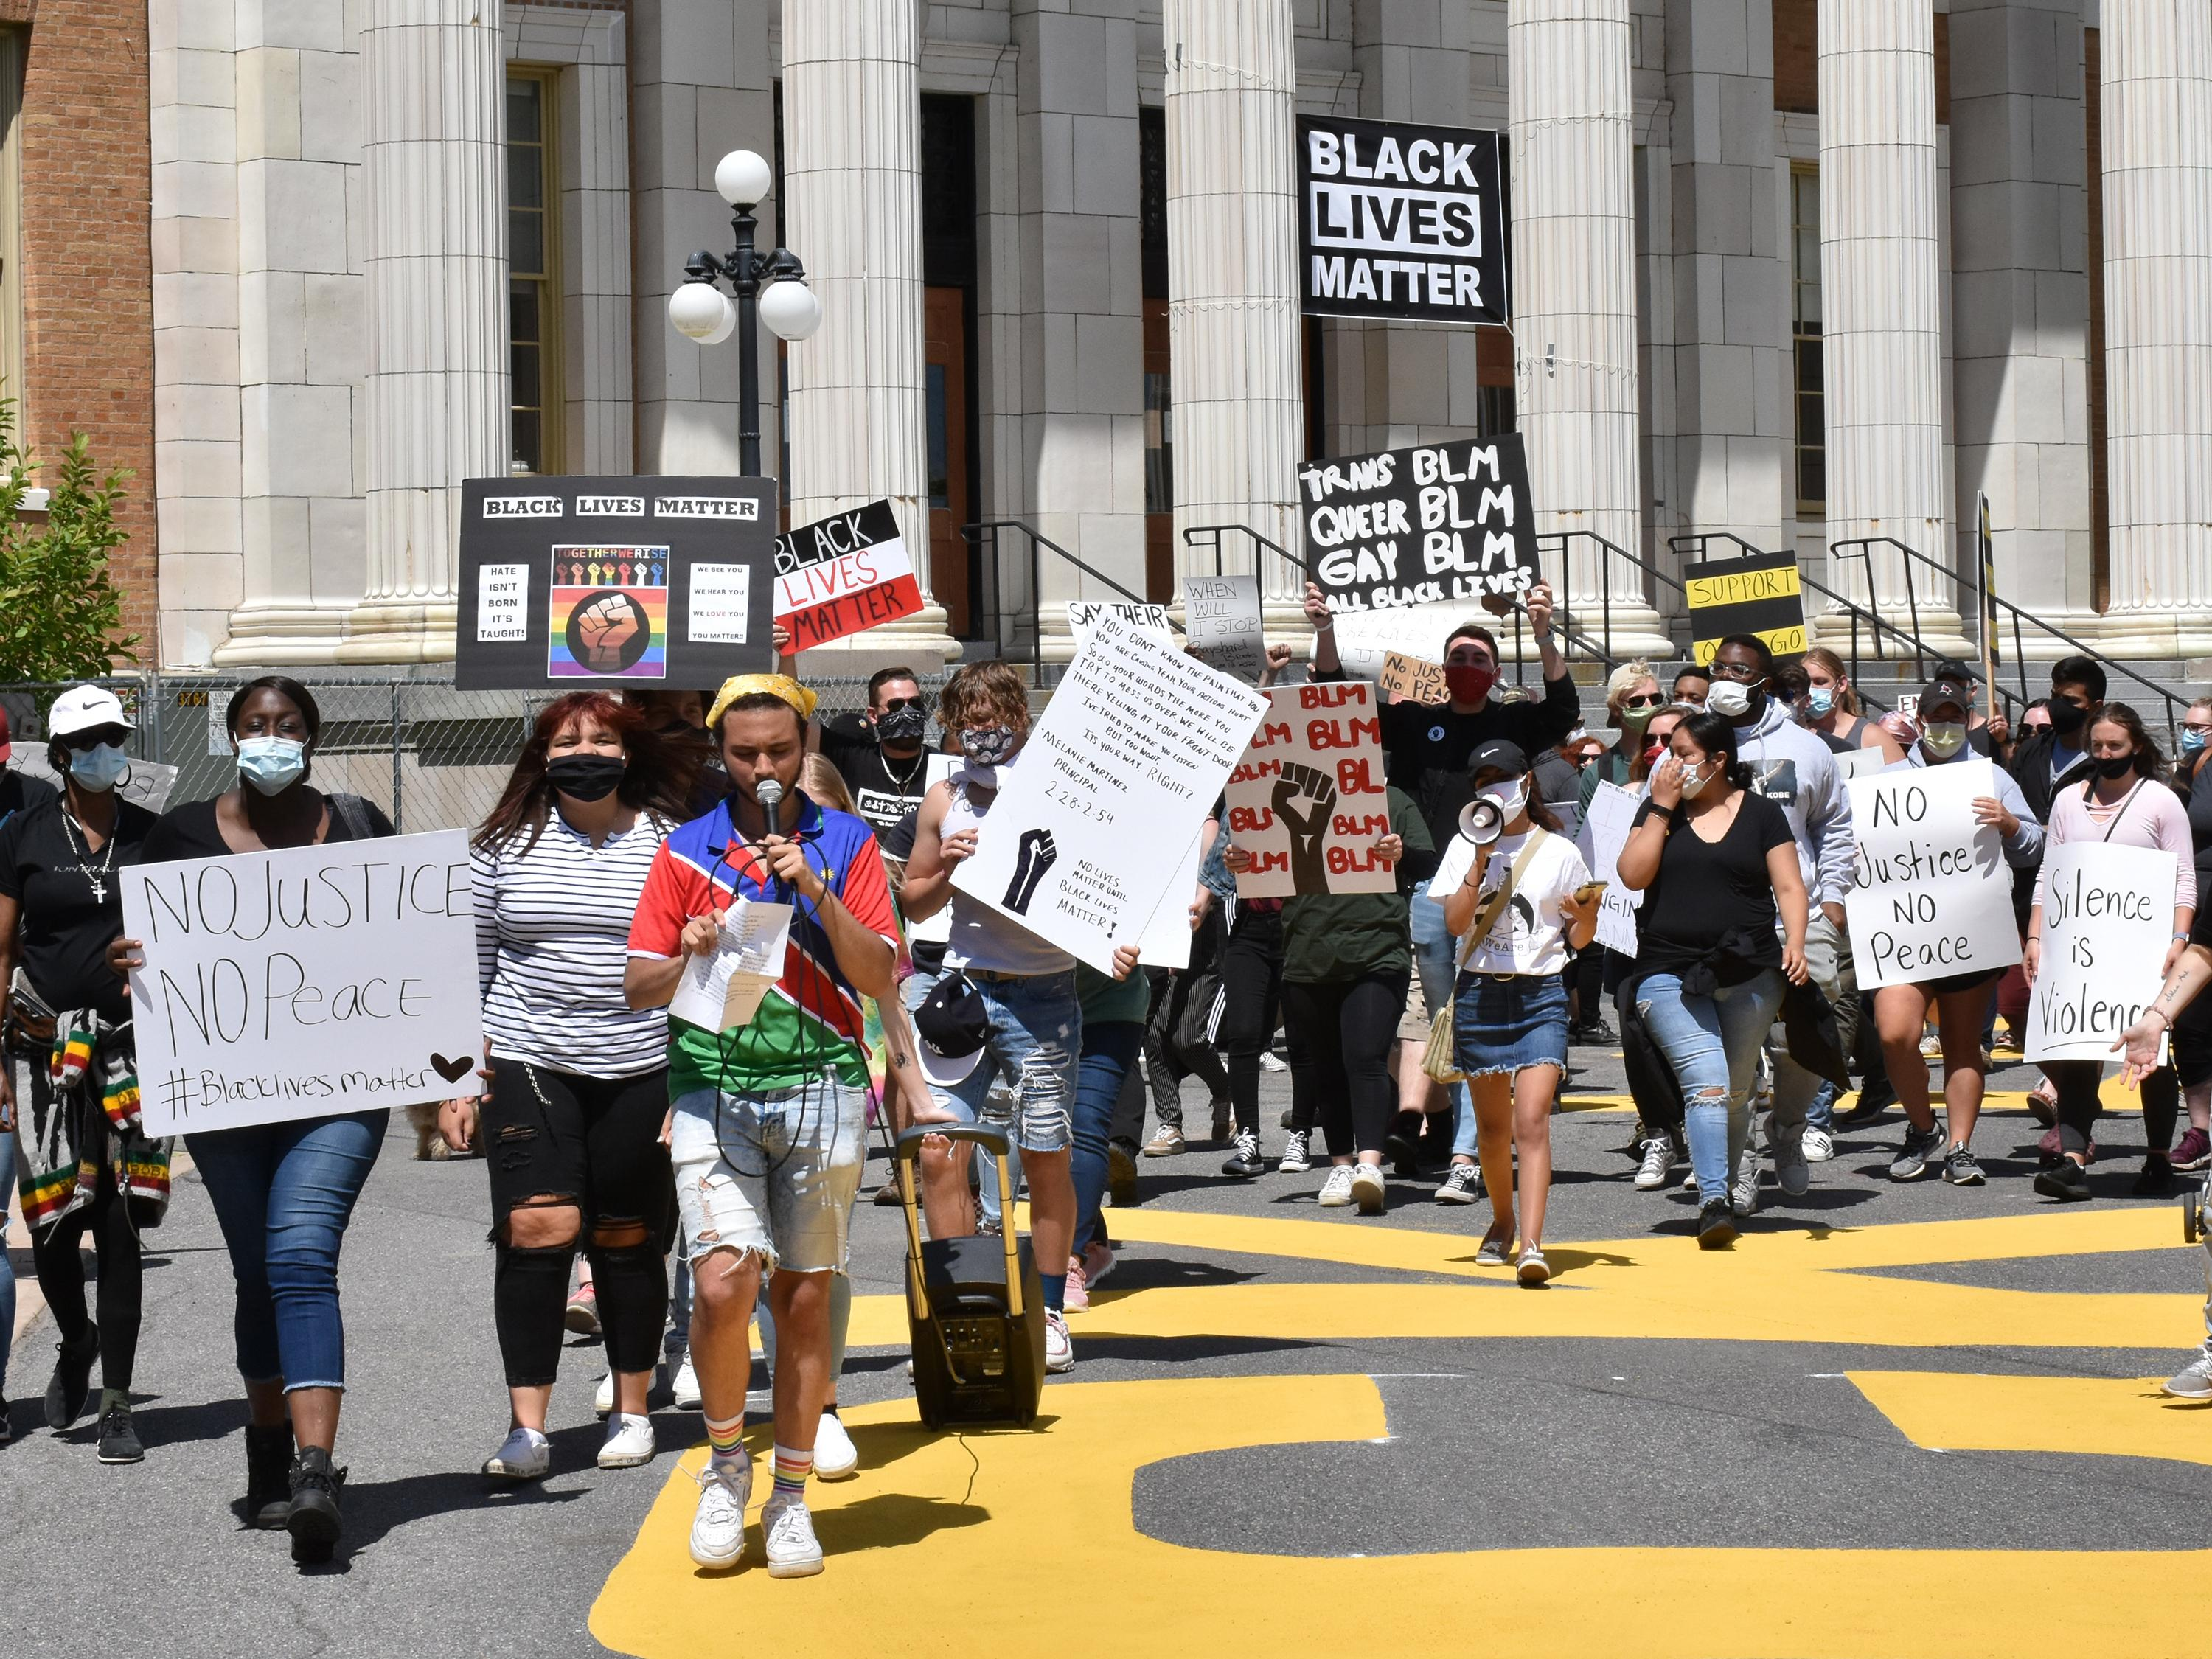 Students, faculty, staff and community members march in support of Black Lives Matter and reform